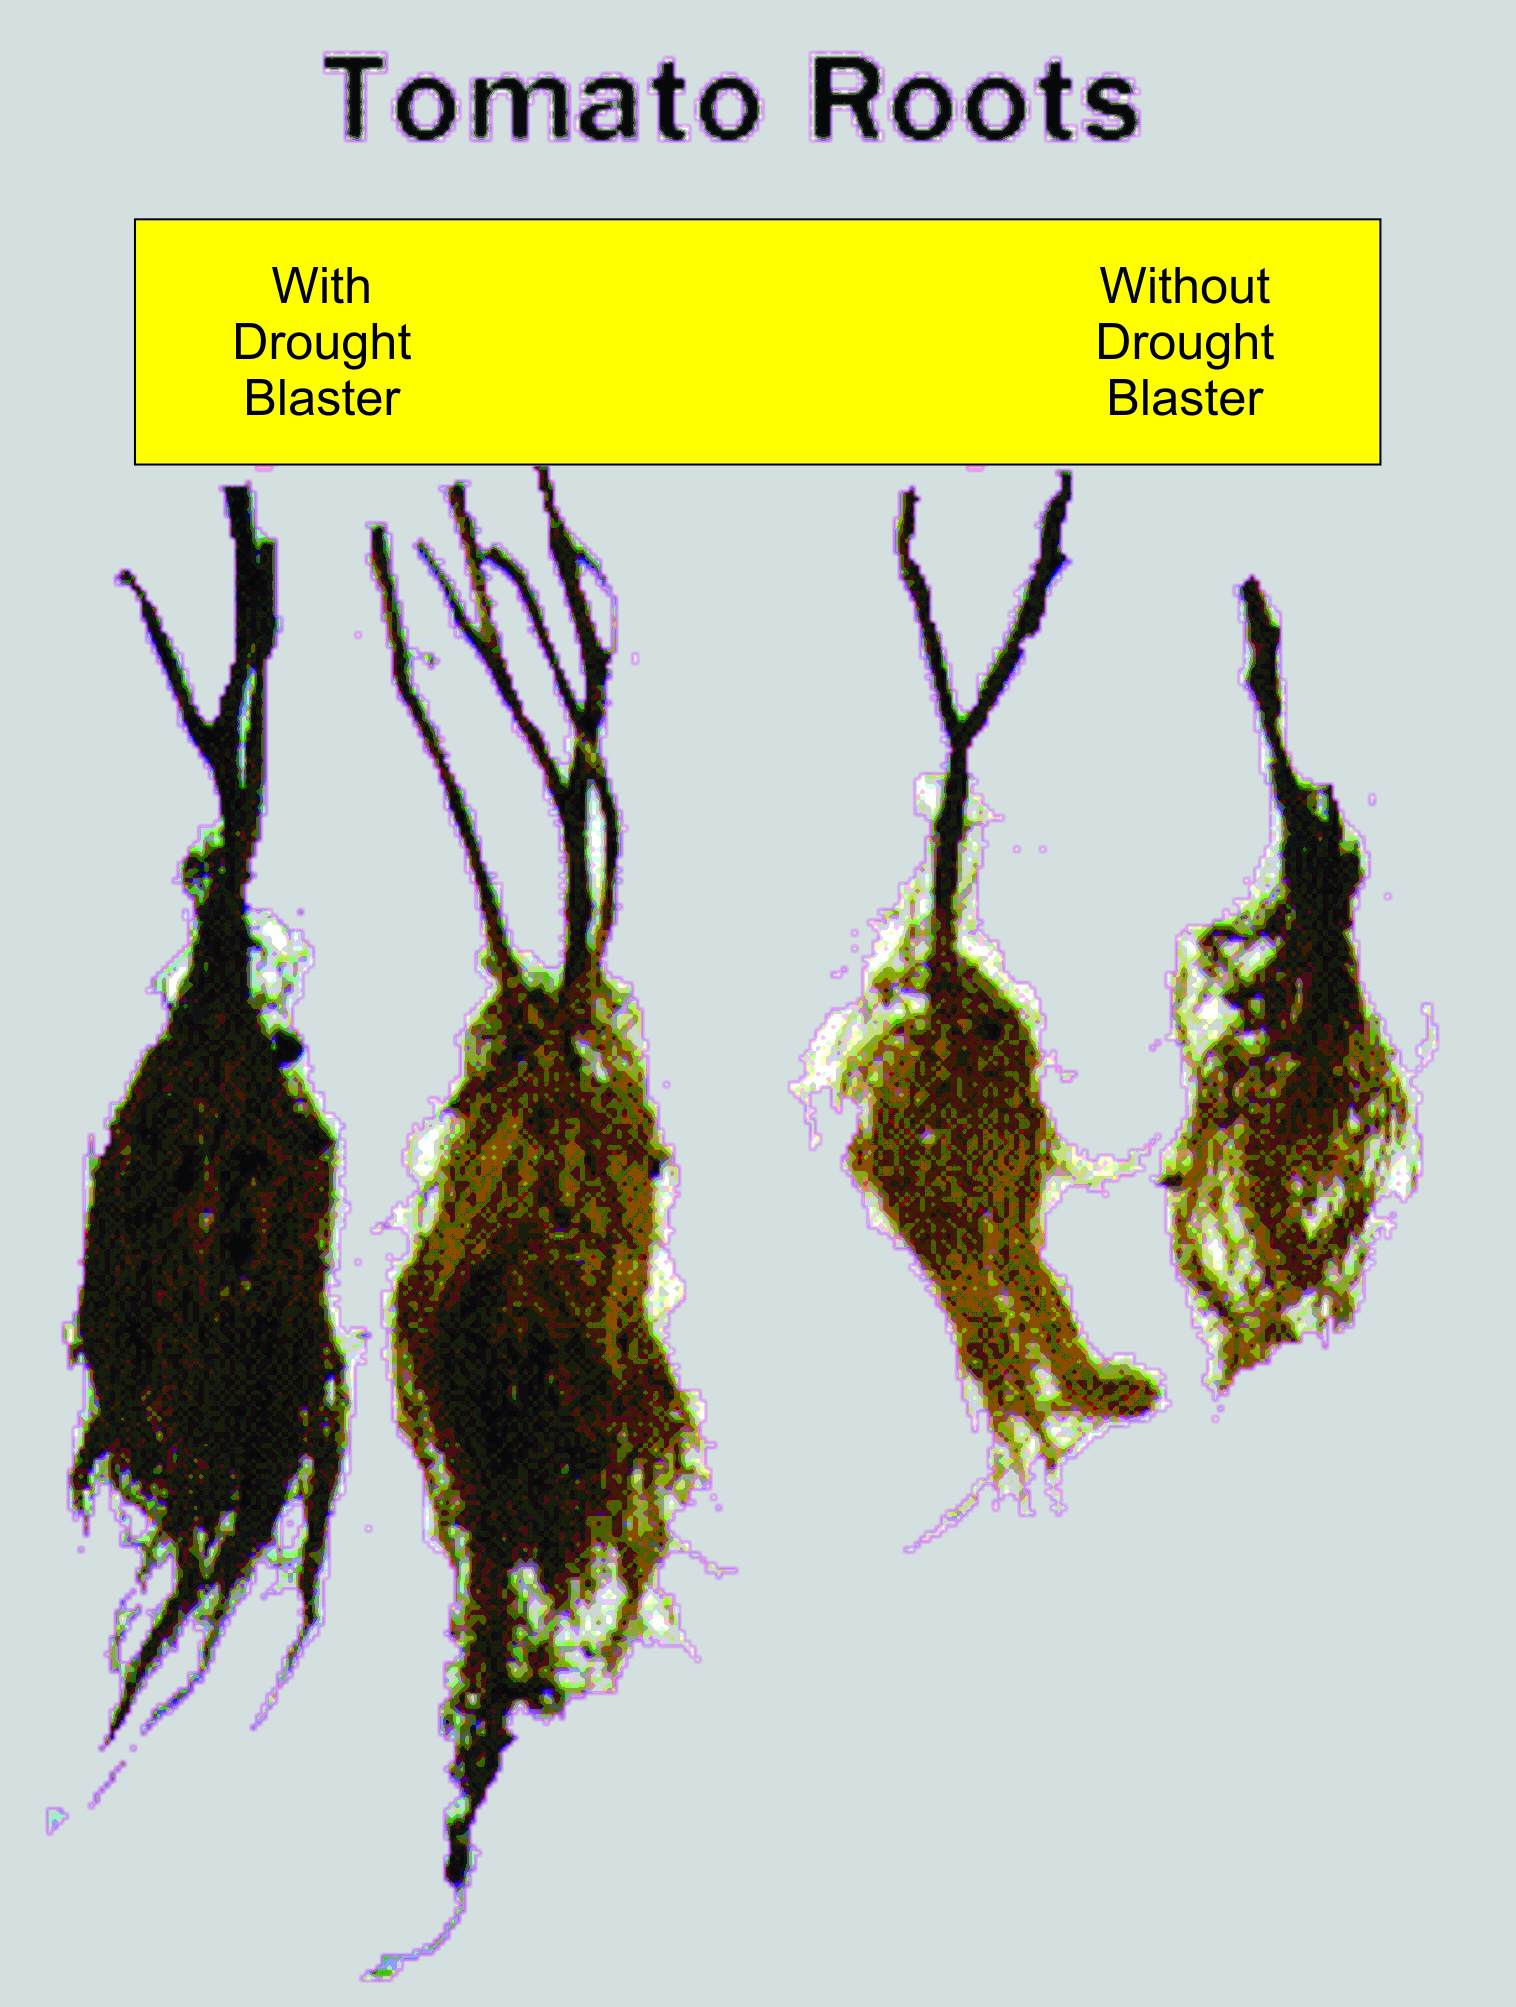 Dought Blaster Improves Plant & Root Quality